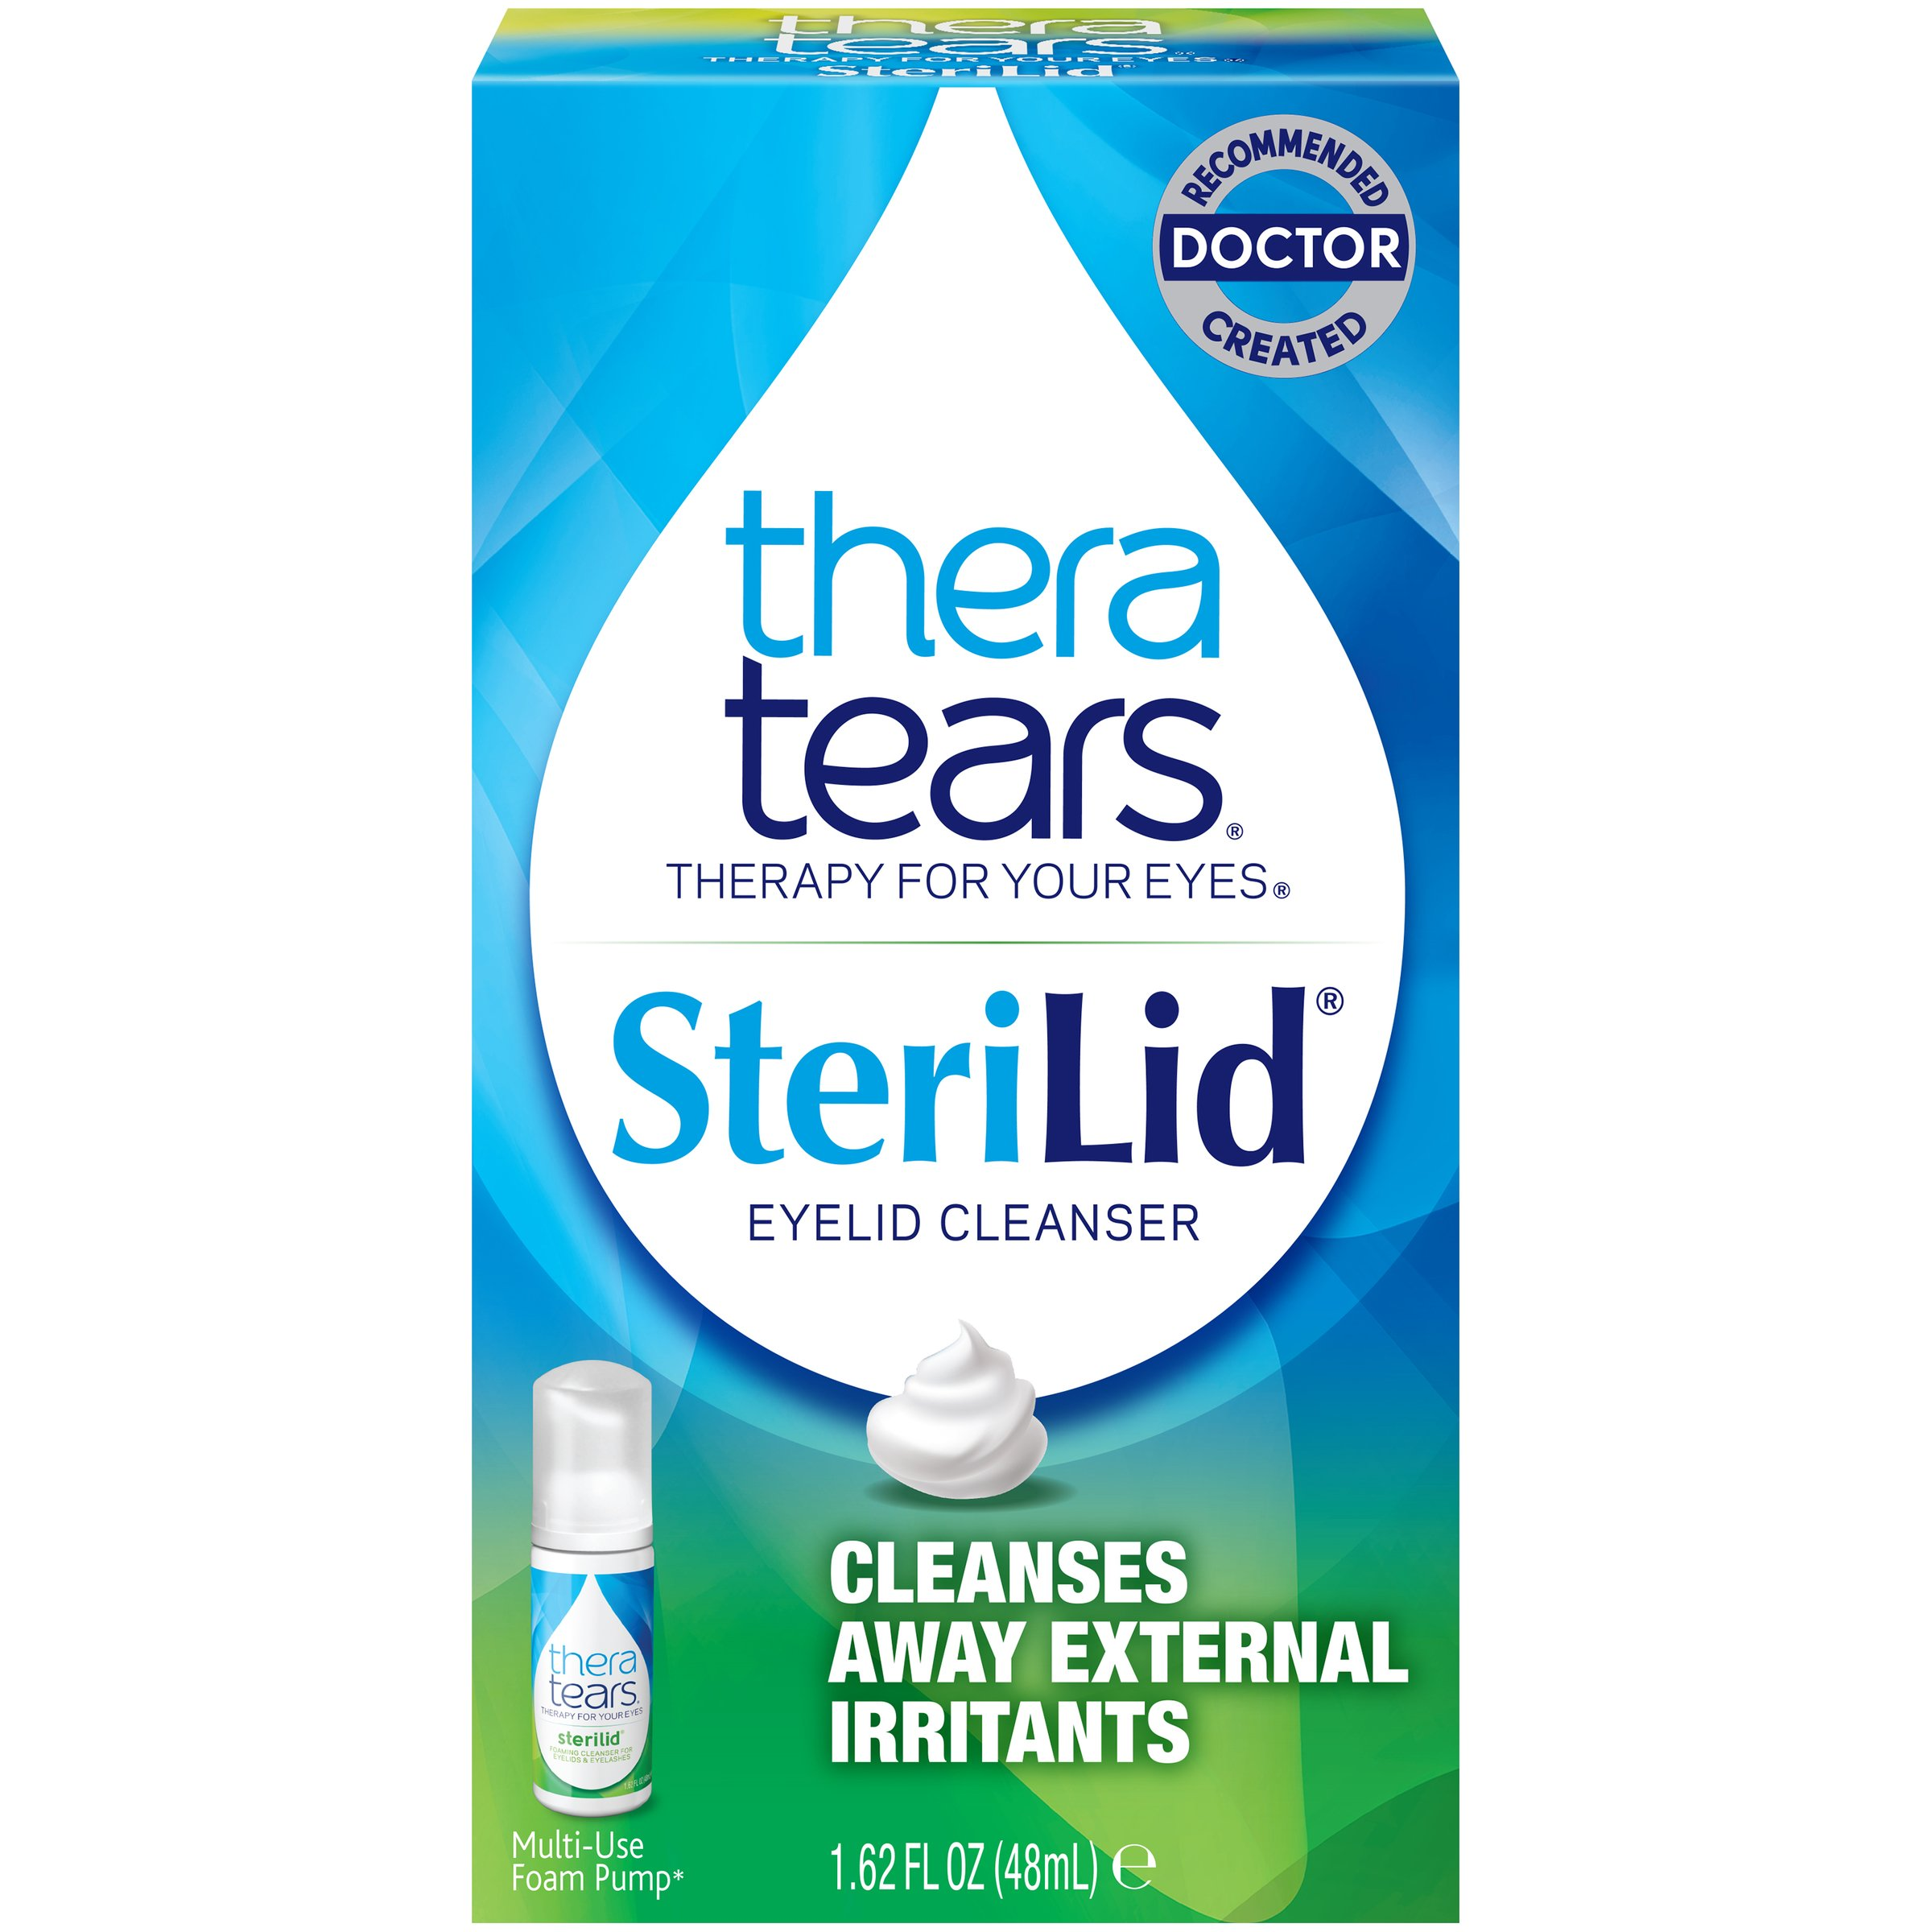 TheraTears Sterilid Eyelid Cleanser, Lid Scrub for Eyes and Eyelashes, 1.62 Fl oz Foam